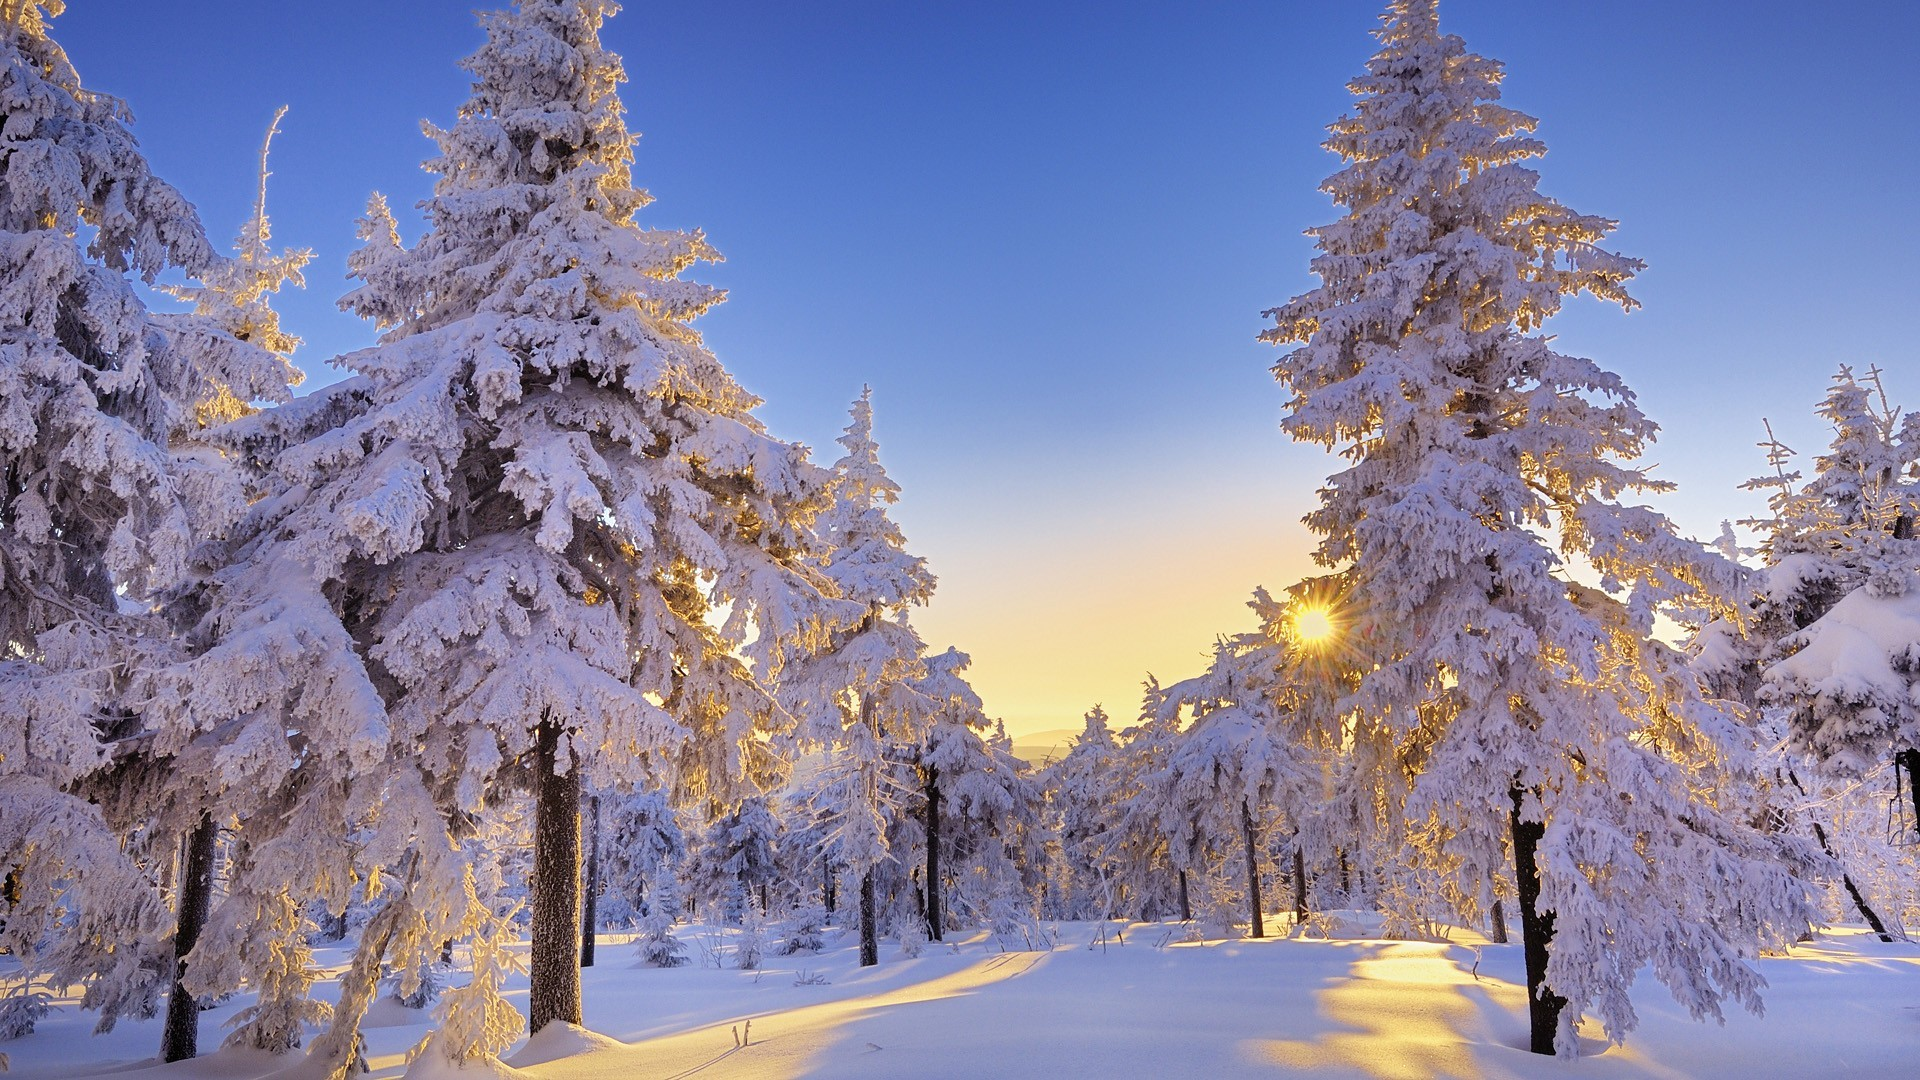 1920x1080 Winter Snow Wallpaper  Winter, Snow, Trees, Germany